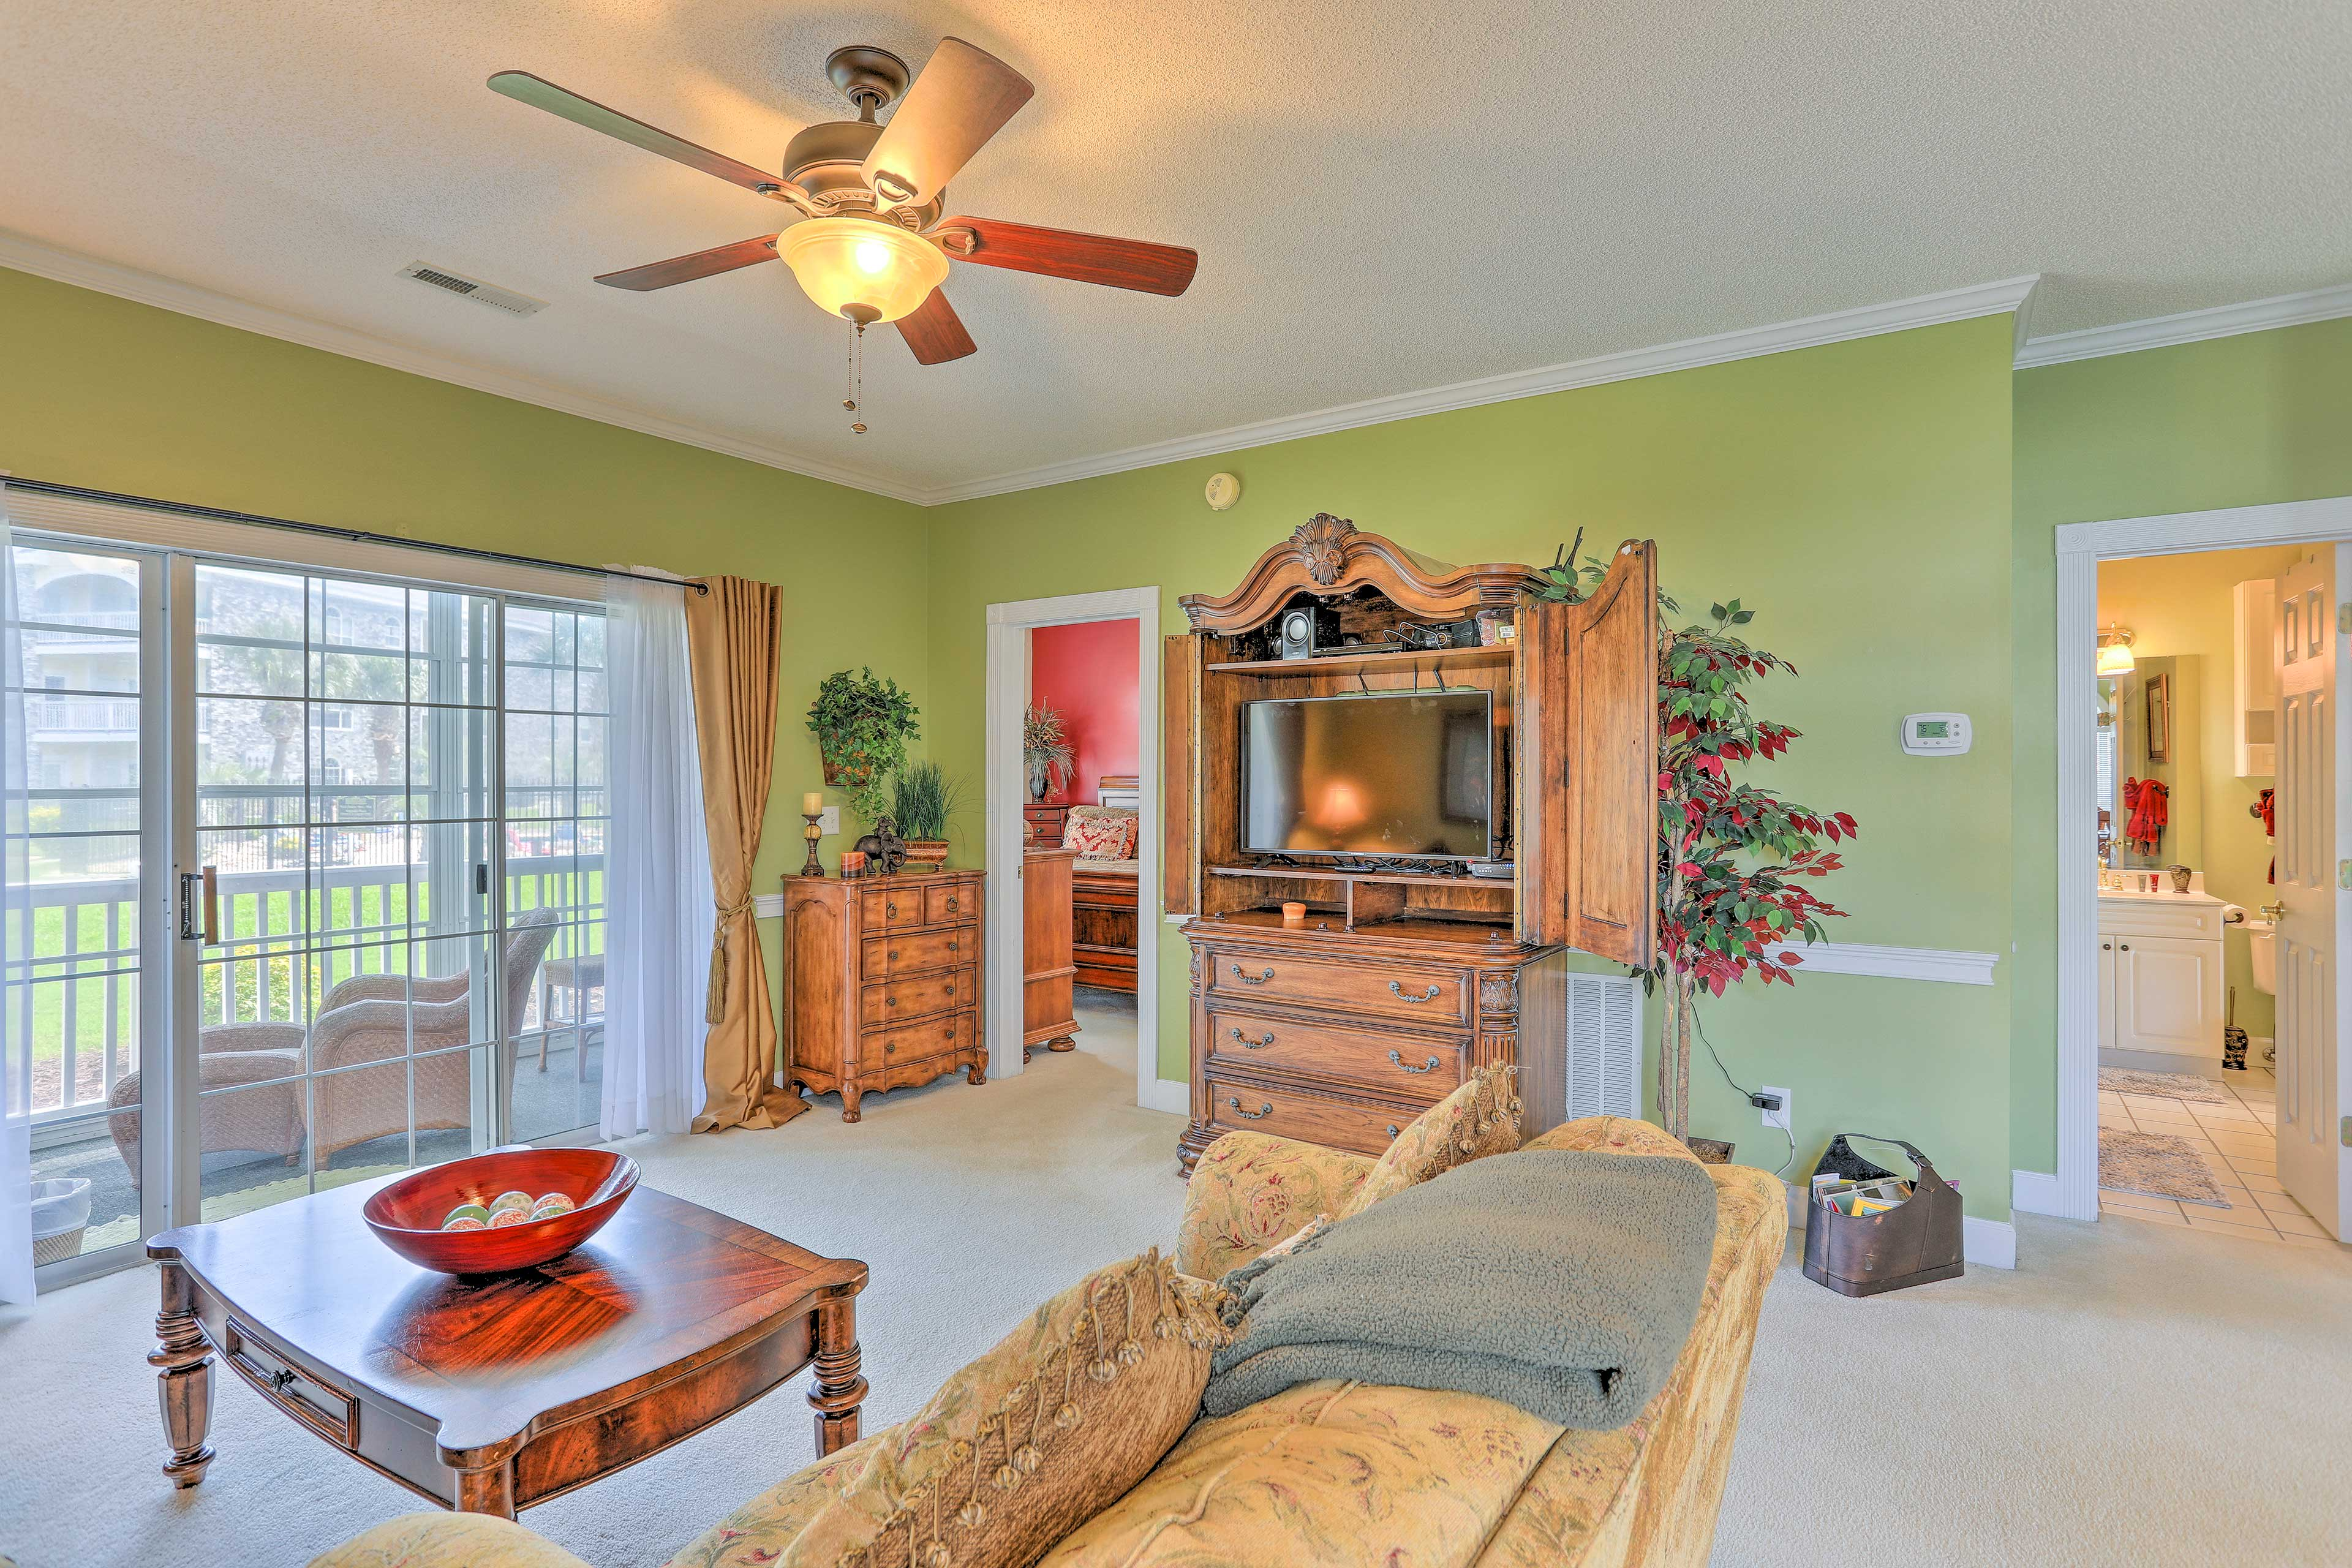 The property features 1,100 square-feet of living space.